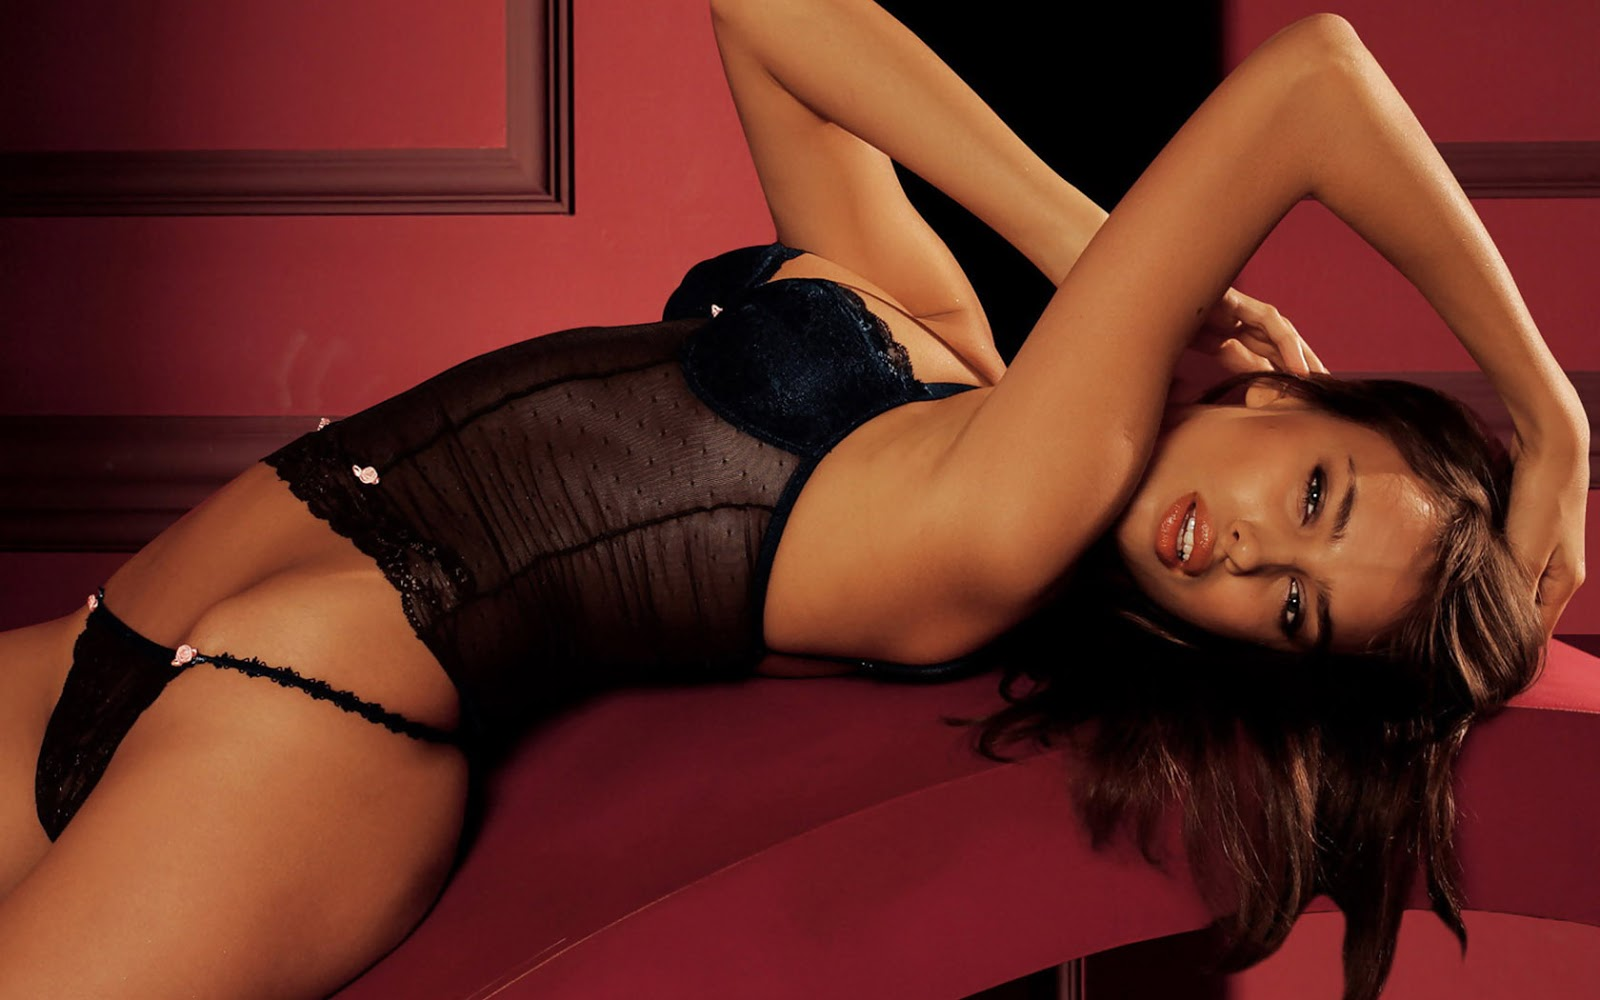 Irina Shayk Hot Hd Wallpapers 2012  Cute Wallpapers-6993